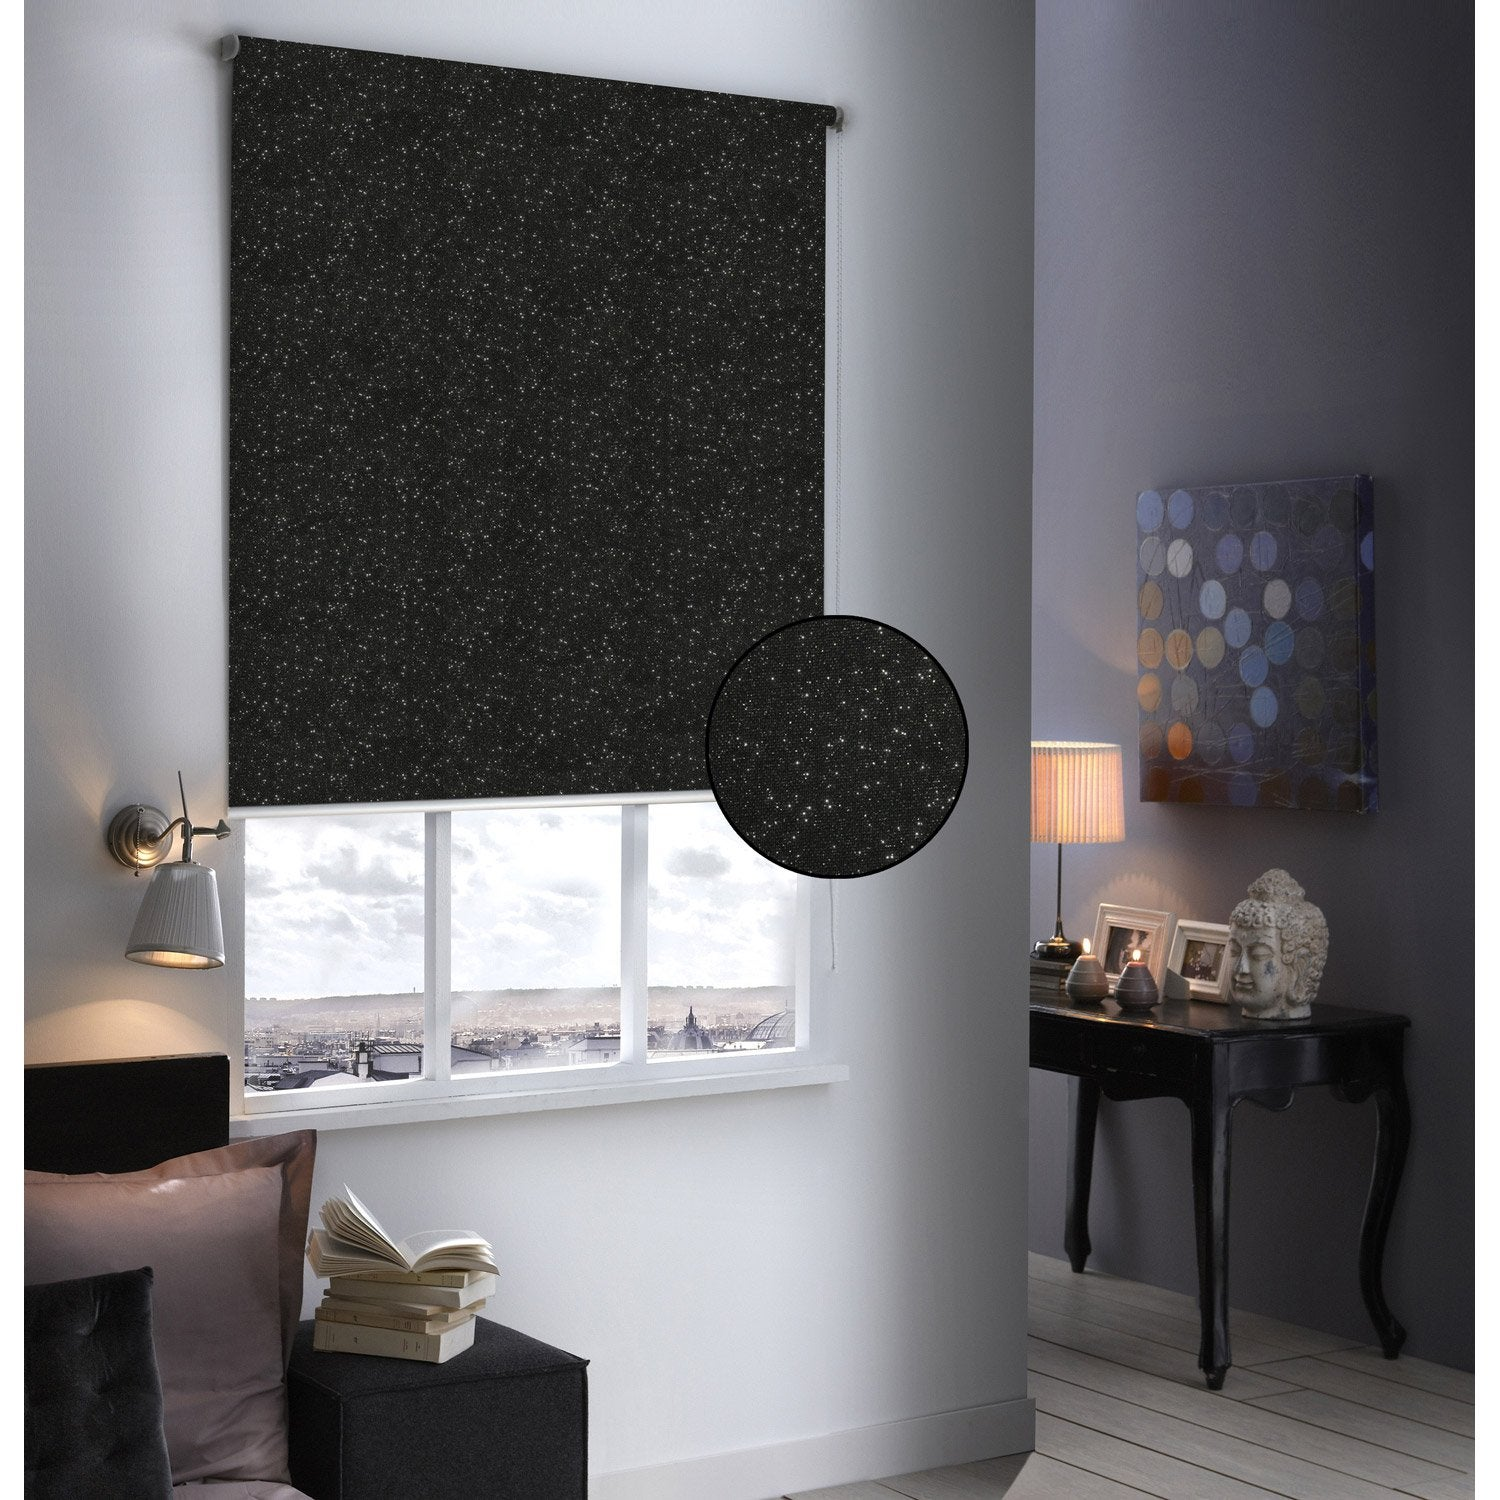 store enrouleur occultant paillettes noir paillet 64x190 cm leroy merlin. Black Bedroom Furniture Sets. Home Design Ideas